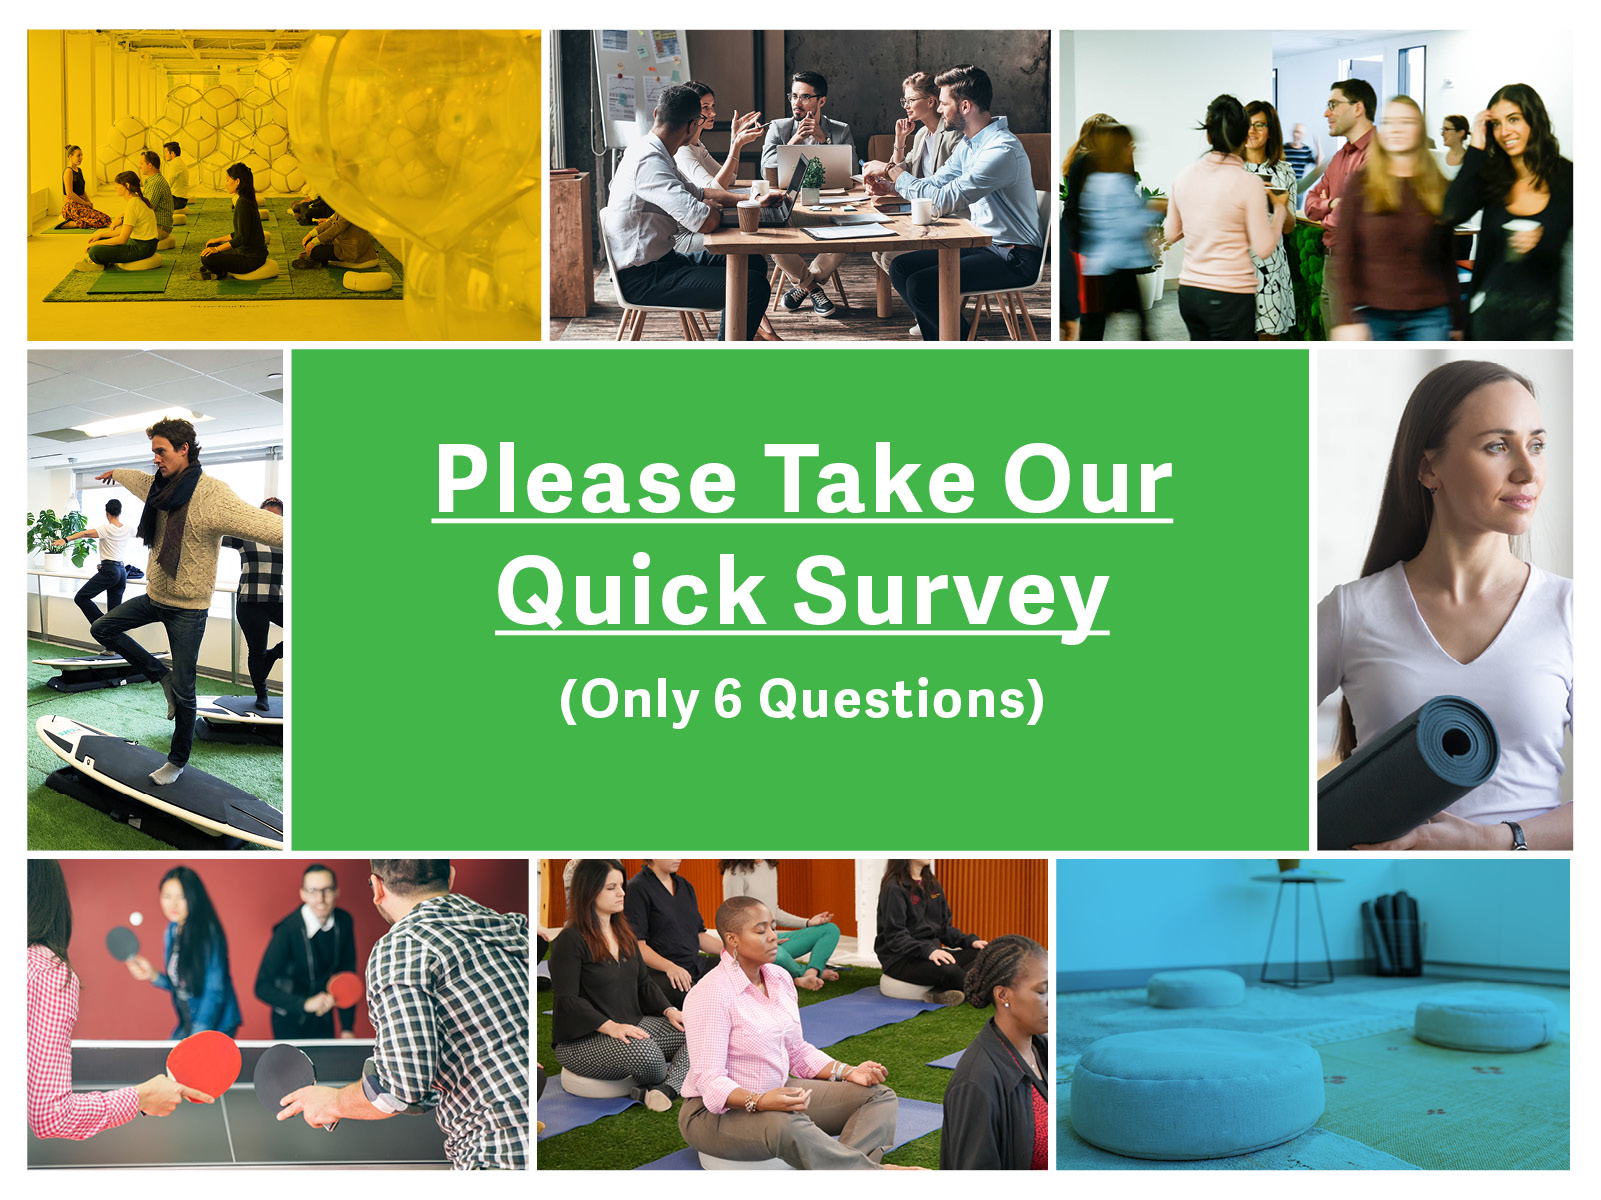 Tenant_Survey_Graphic_Glenpointe.jpg